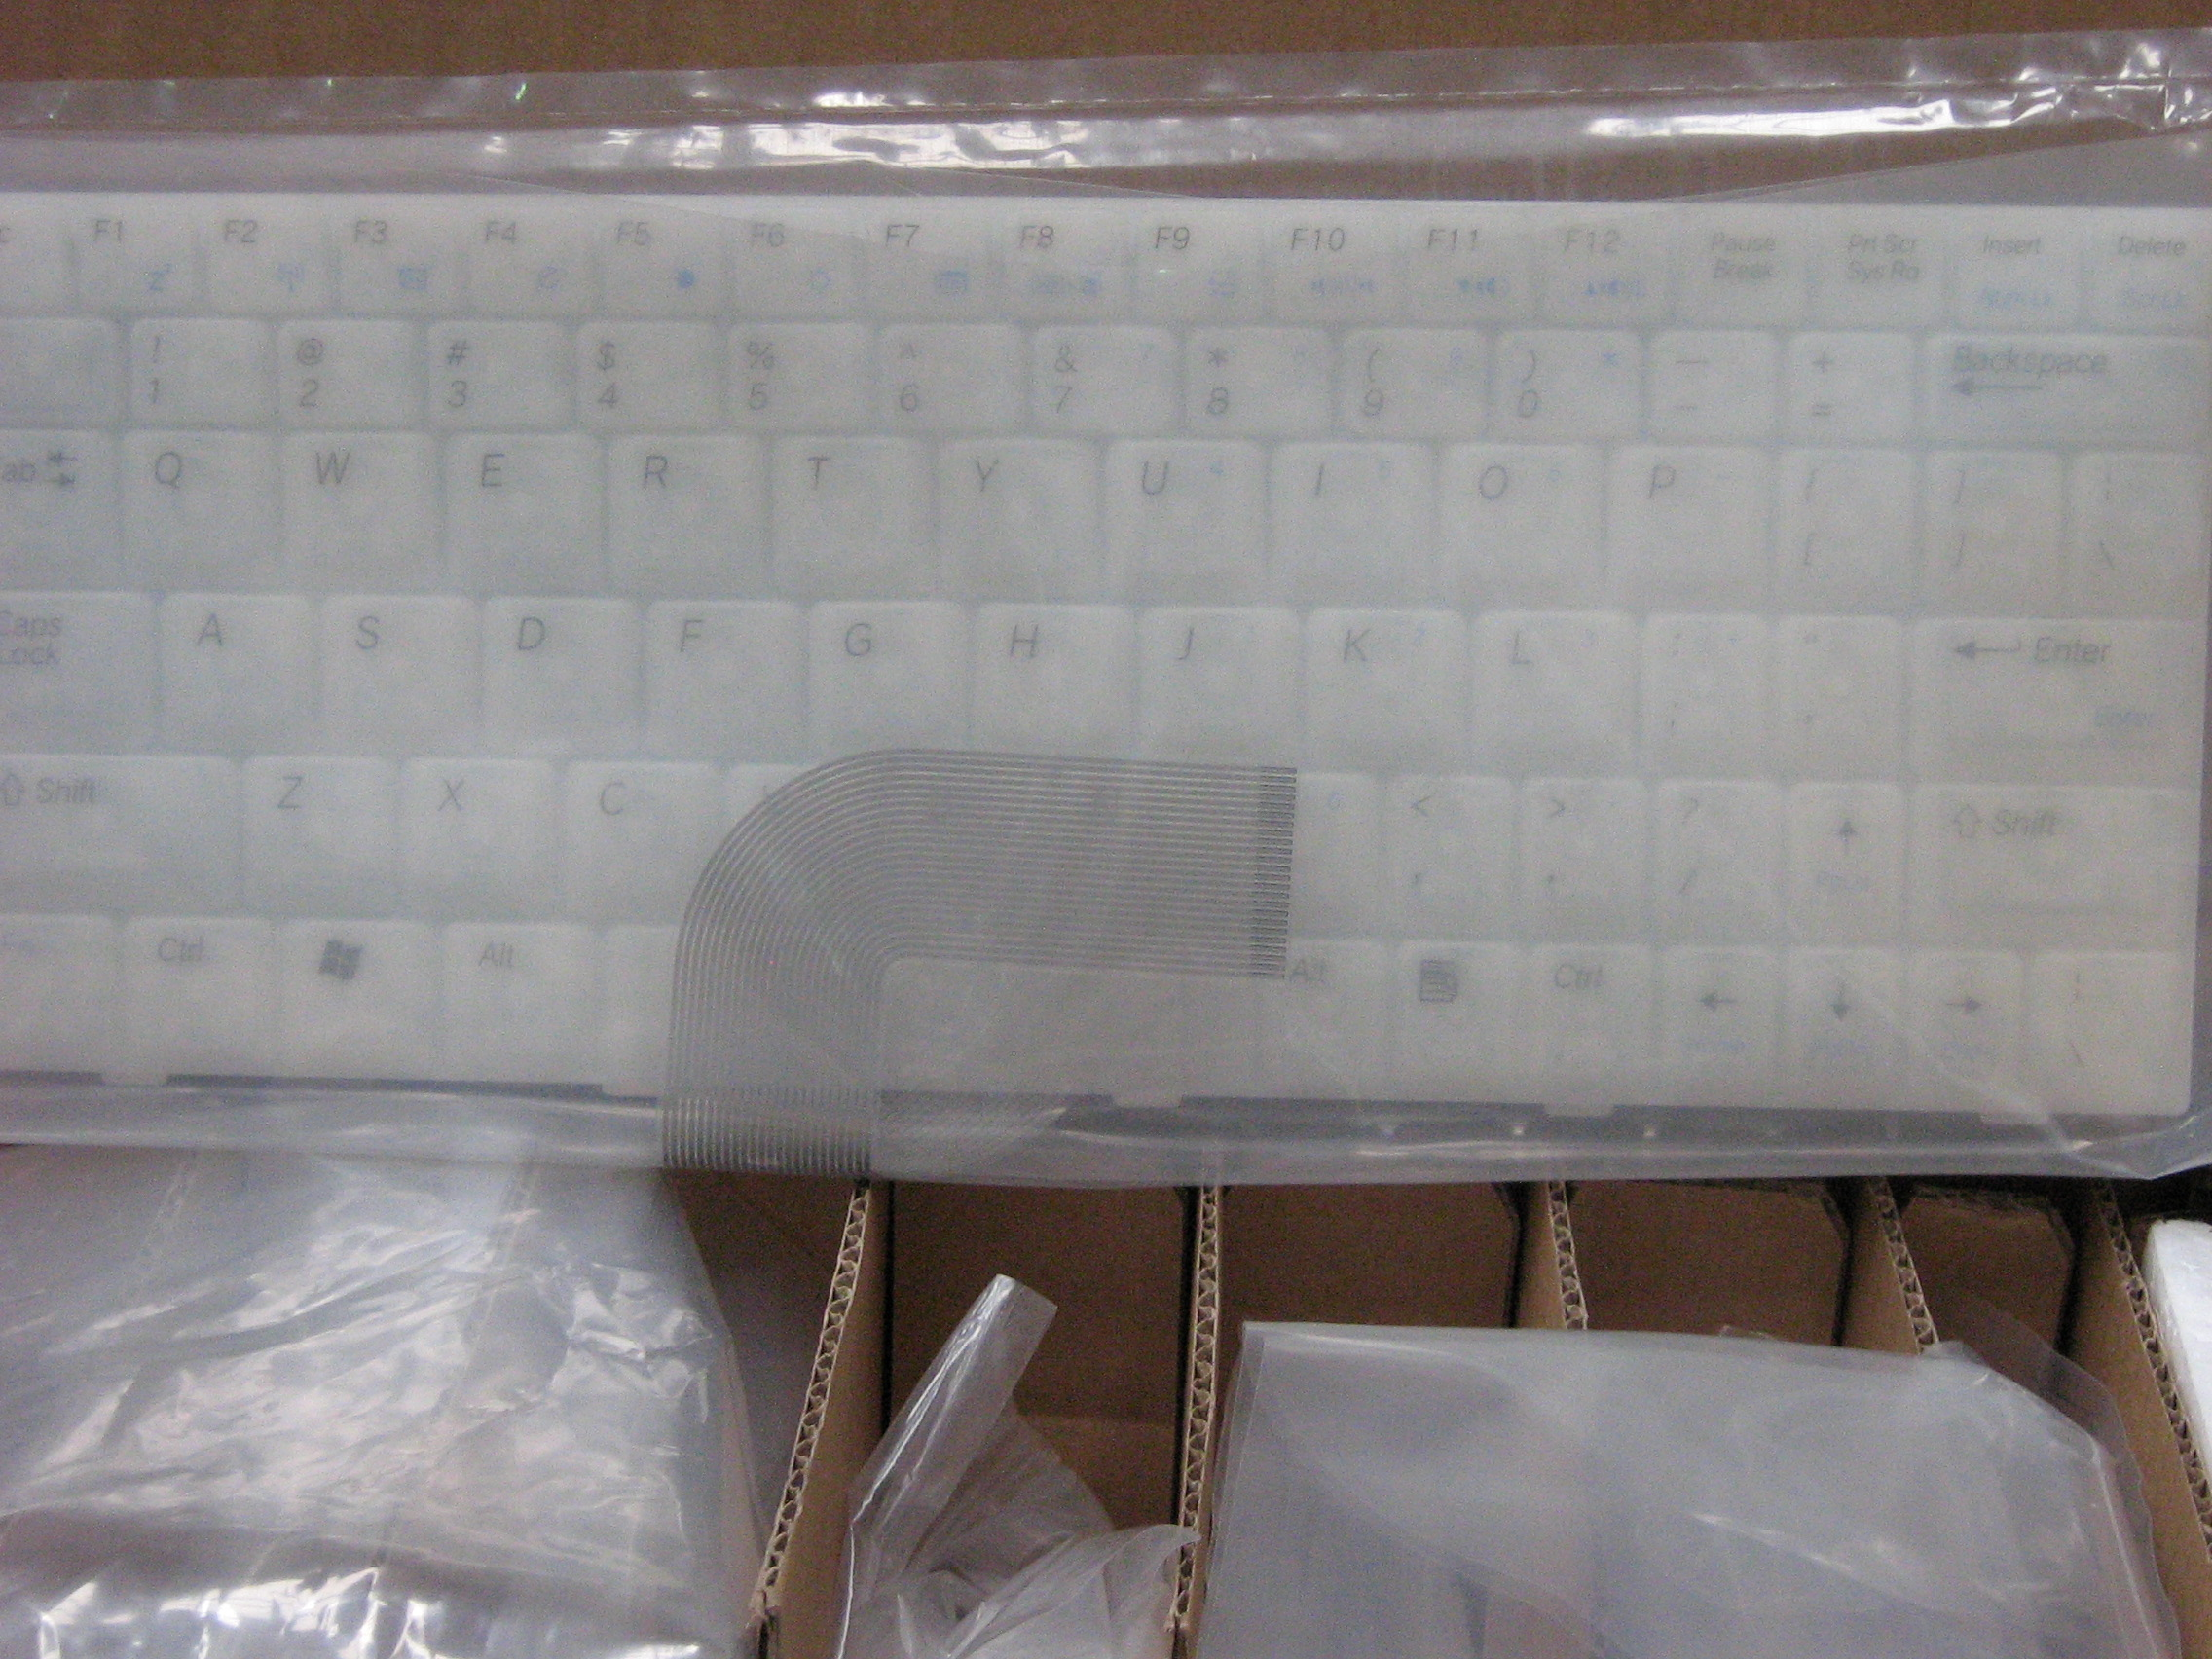 ASUS M5N UK KEYBOARD